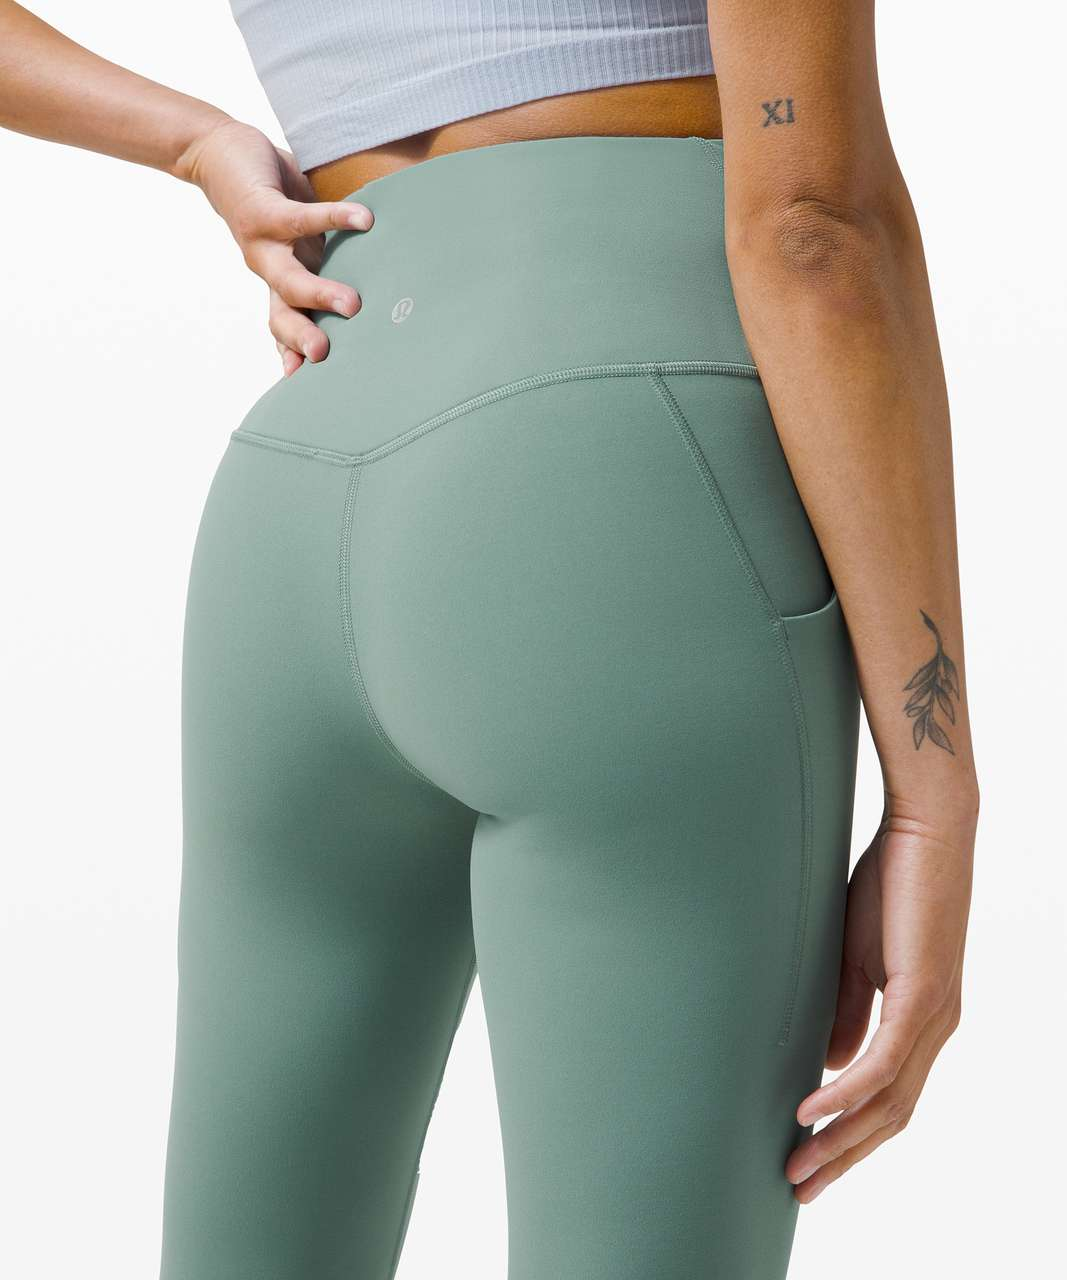 """Lululemon Align High Rise Pant with Pockets 25"""" - Tidewater Teal"""